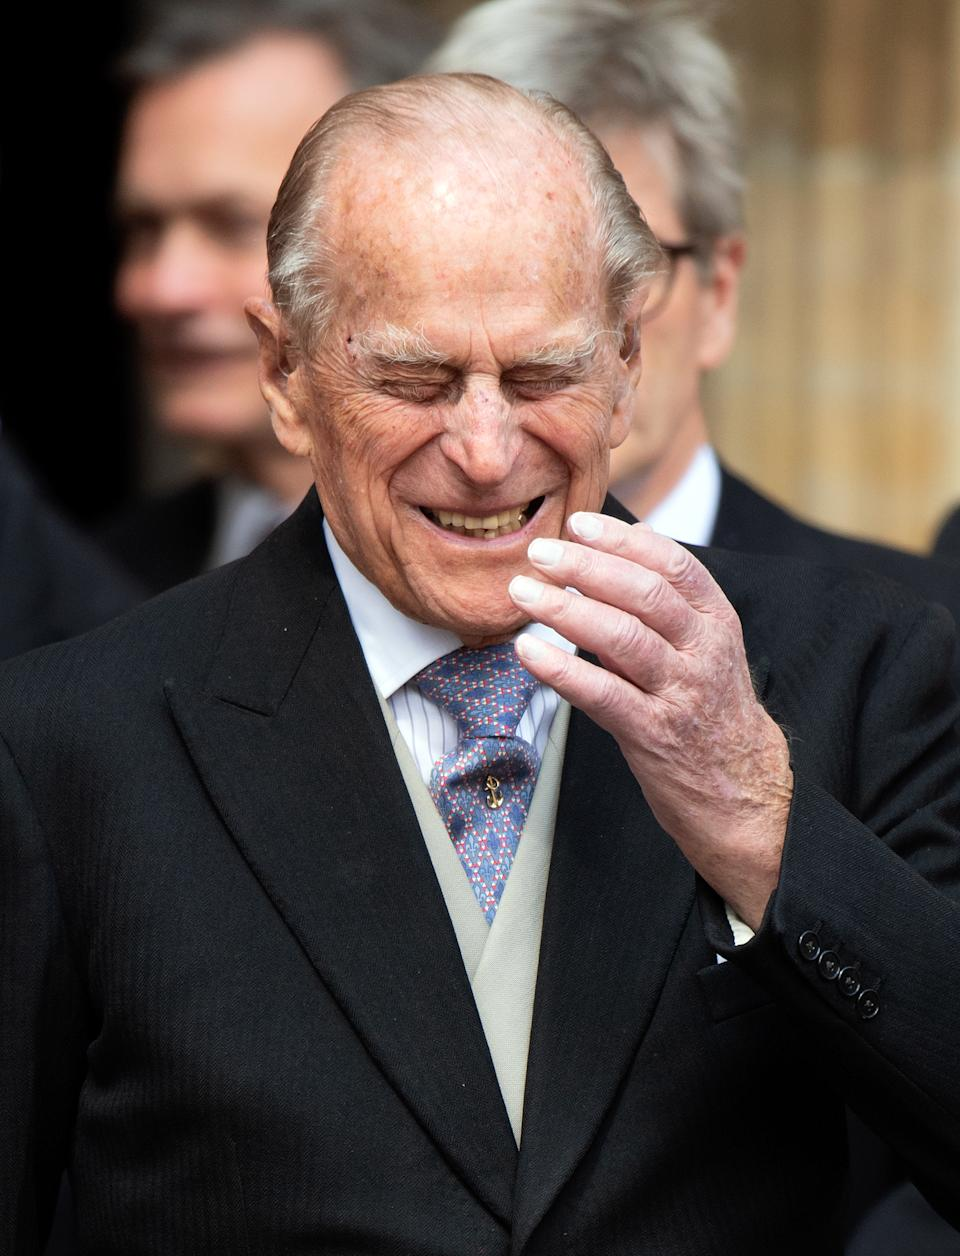 WINDSOR, UNITED KINGDOM - MAY 18: (EMBARGOED FOR PUBLICATION IN UK NEWSPAPERS UNTIL 24 HOURS AFTER CREATE DATE AND TIME) Prince Philip, Duke of Edinburgh attends the wedding of Lady Gabriella Windsor and Thomas Kingston at St George's Chapel on May 18, 2019 in Windsor, England. (Photo by Pool/Max Mumby/Getty Images)